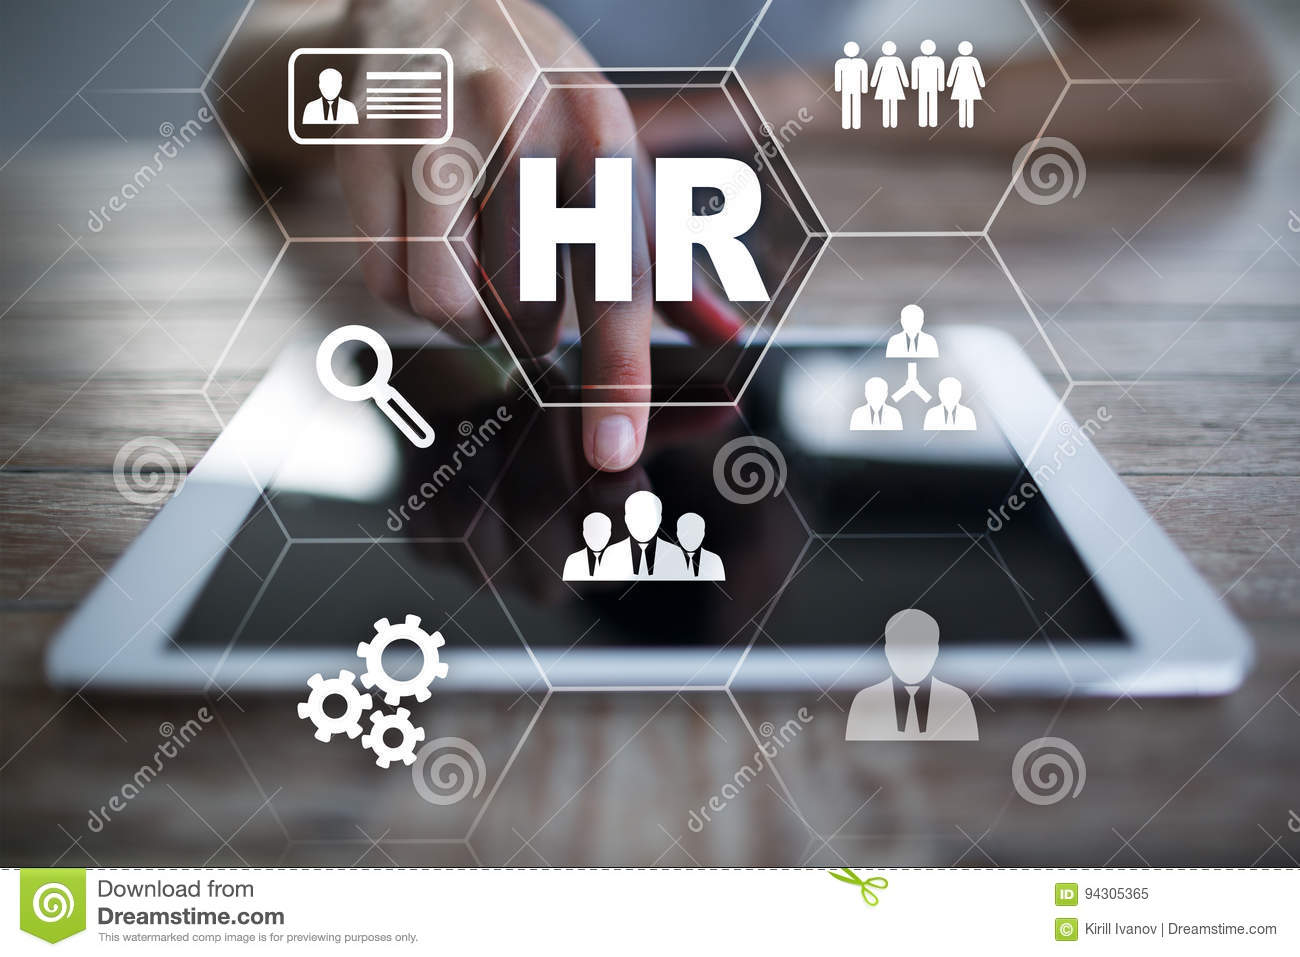 Human resource management, HR, recruitment and teambuilding. Business concept.